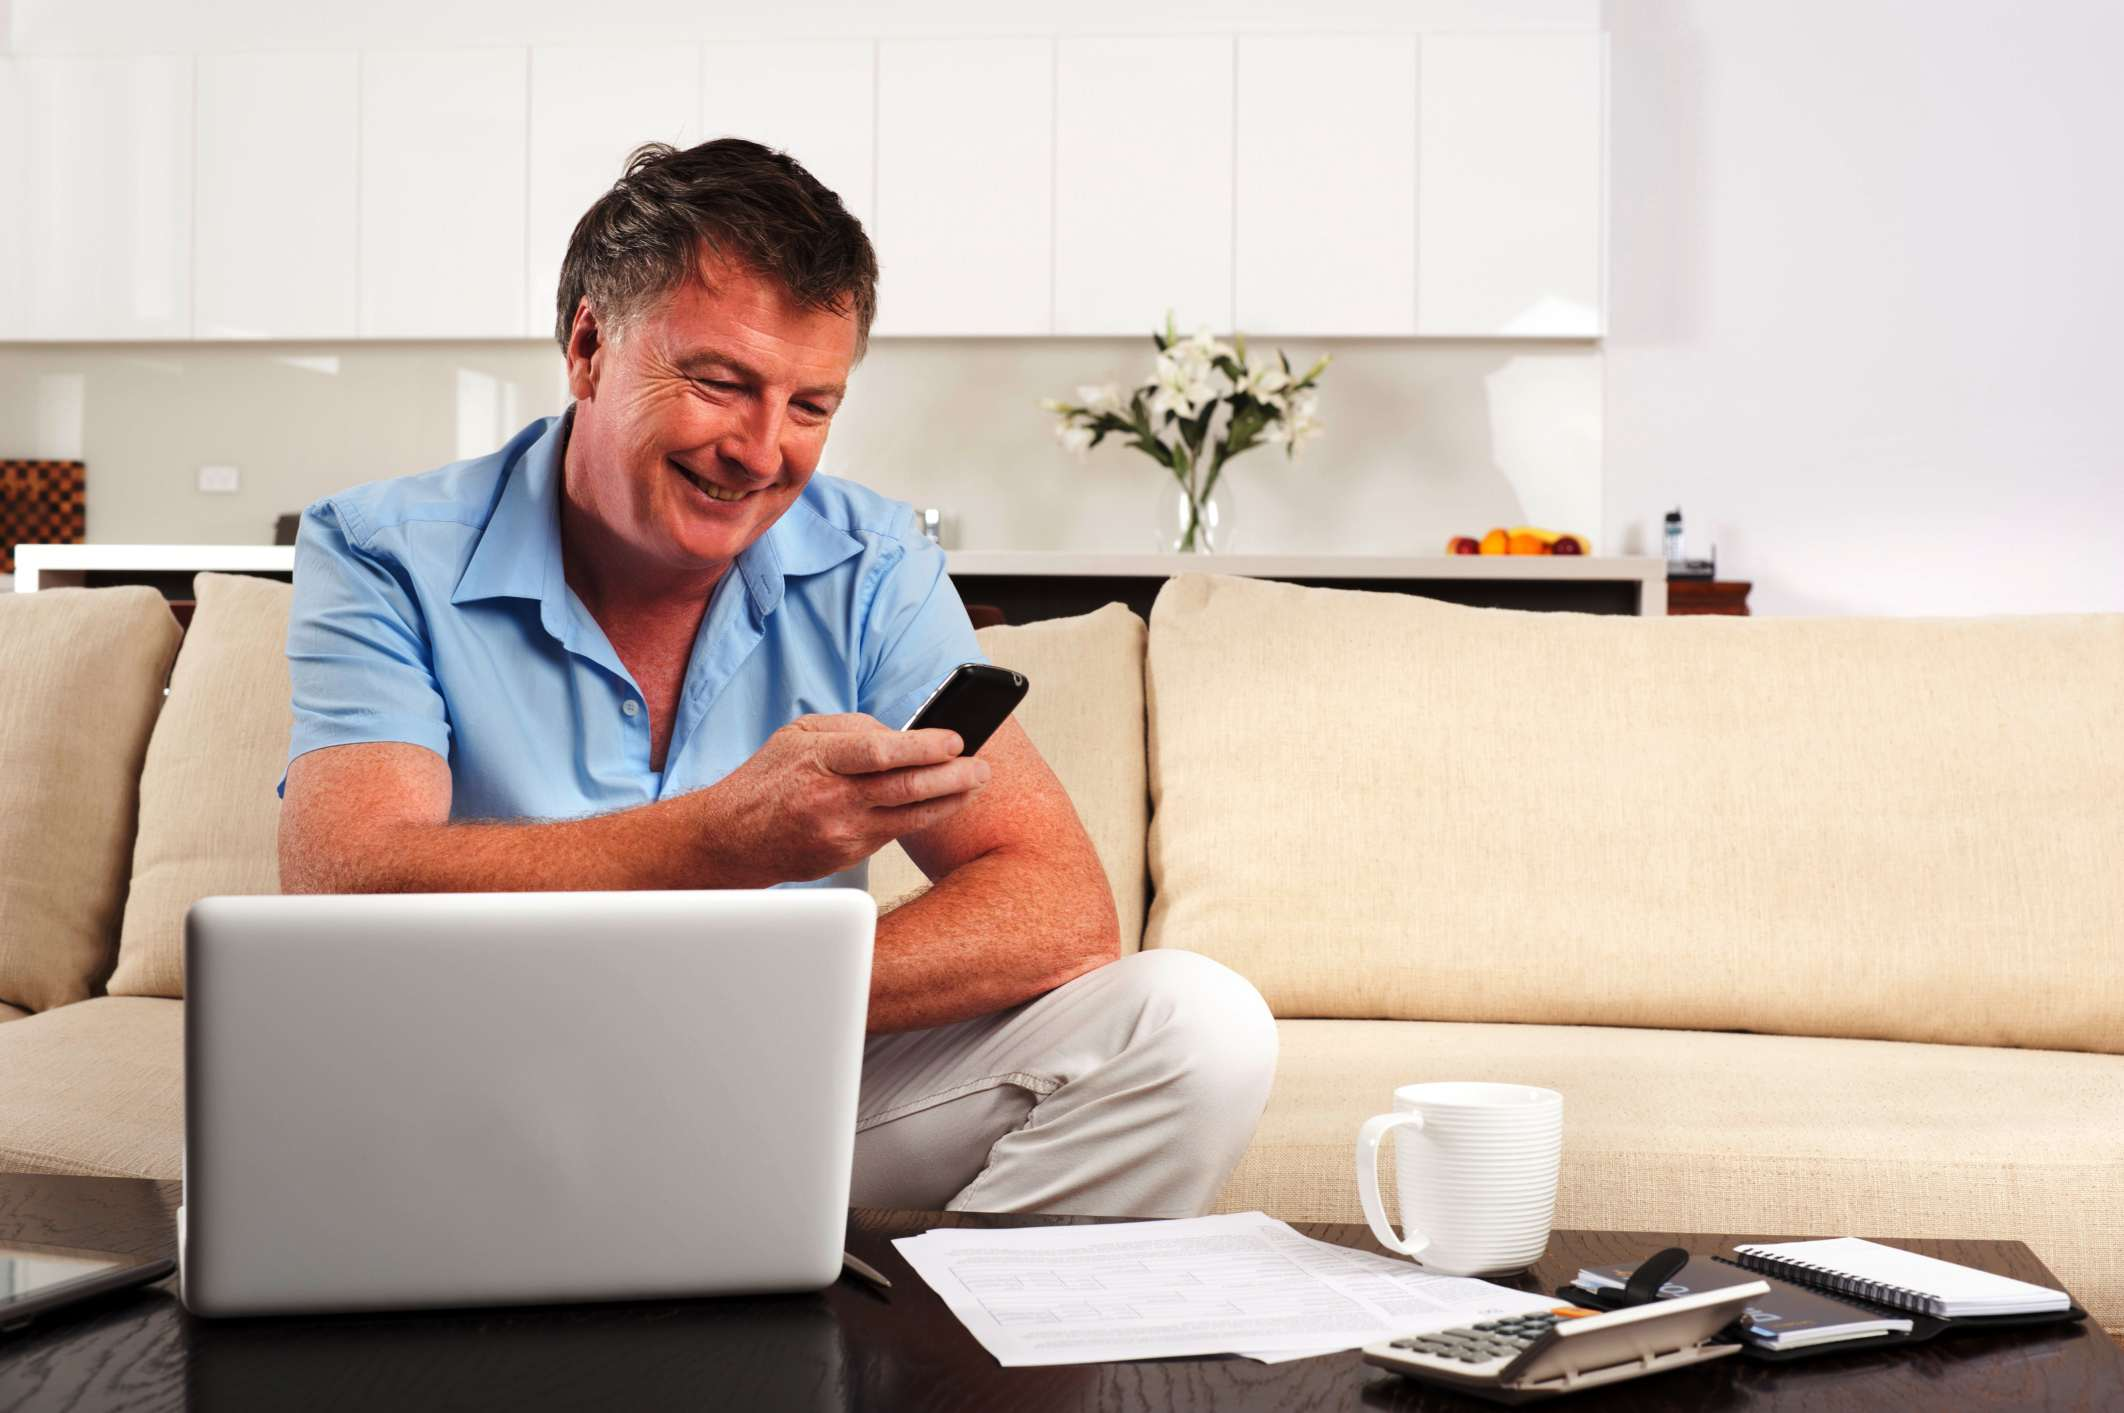 Man working on income tax at his laptop